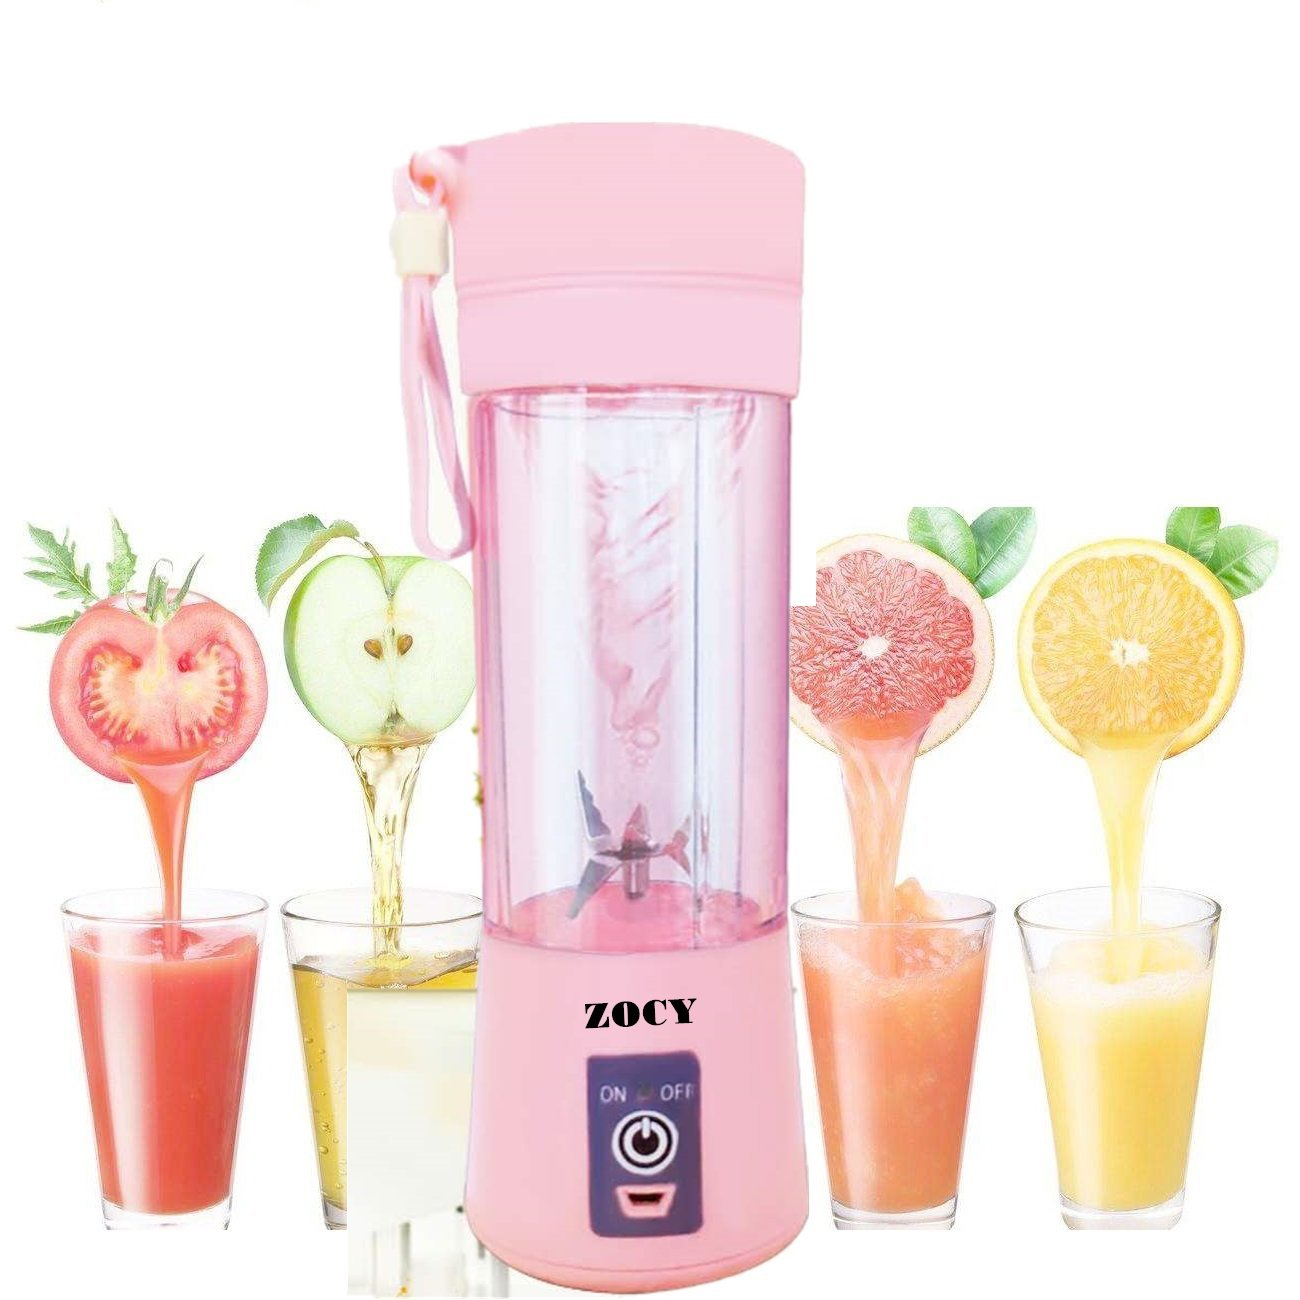 ZOCYE [New Version] Portable Juicer Blender USB Juicer Cup Personal Blender 6 Blades Rechargeable Fruit Mixing Machine For Baby Travel 380ml(Pink)